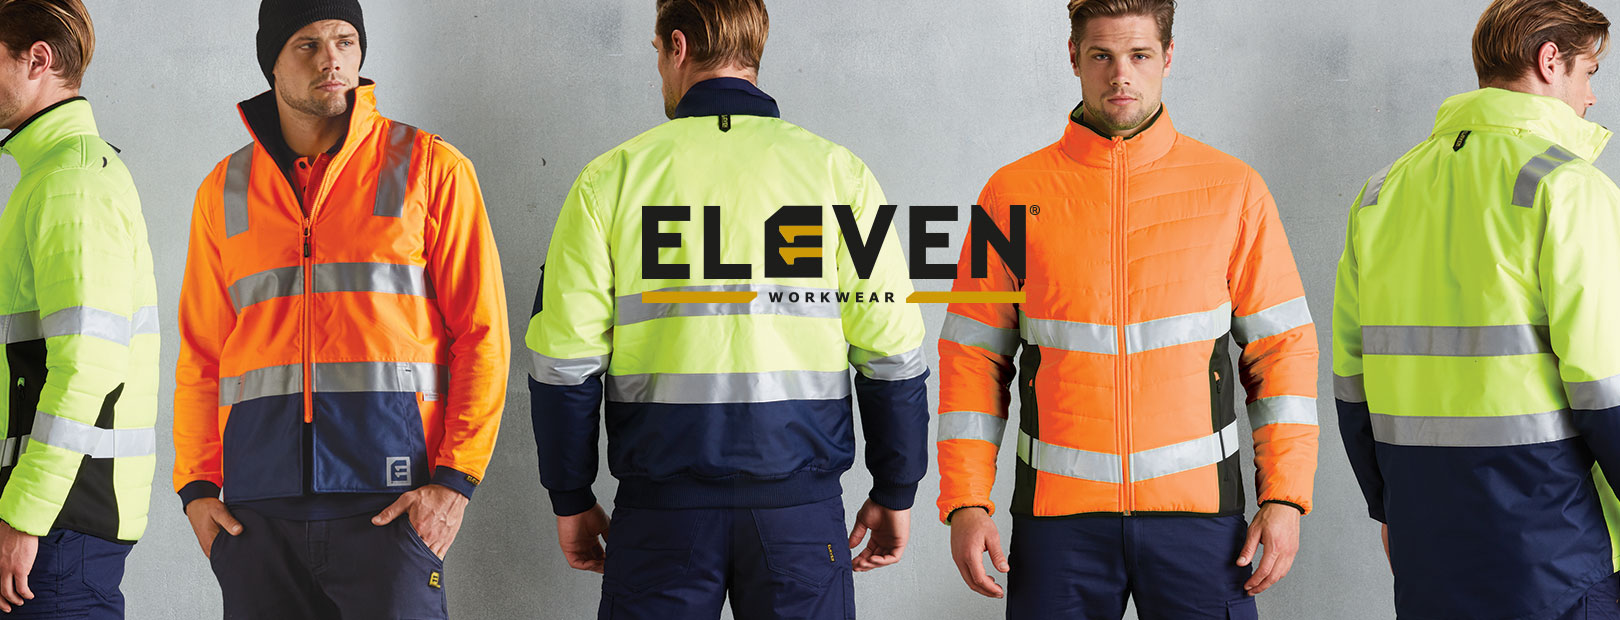 ELEVEN Workwear at RSEA Saftey - The Safety Experts!